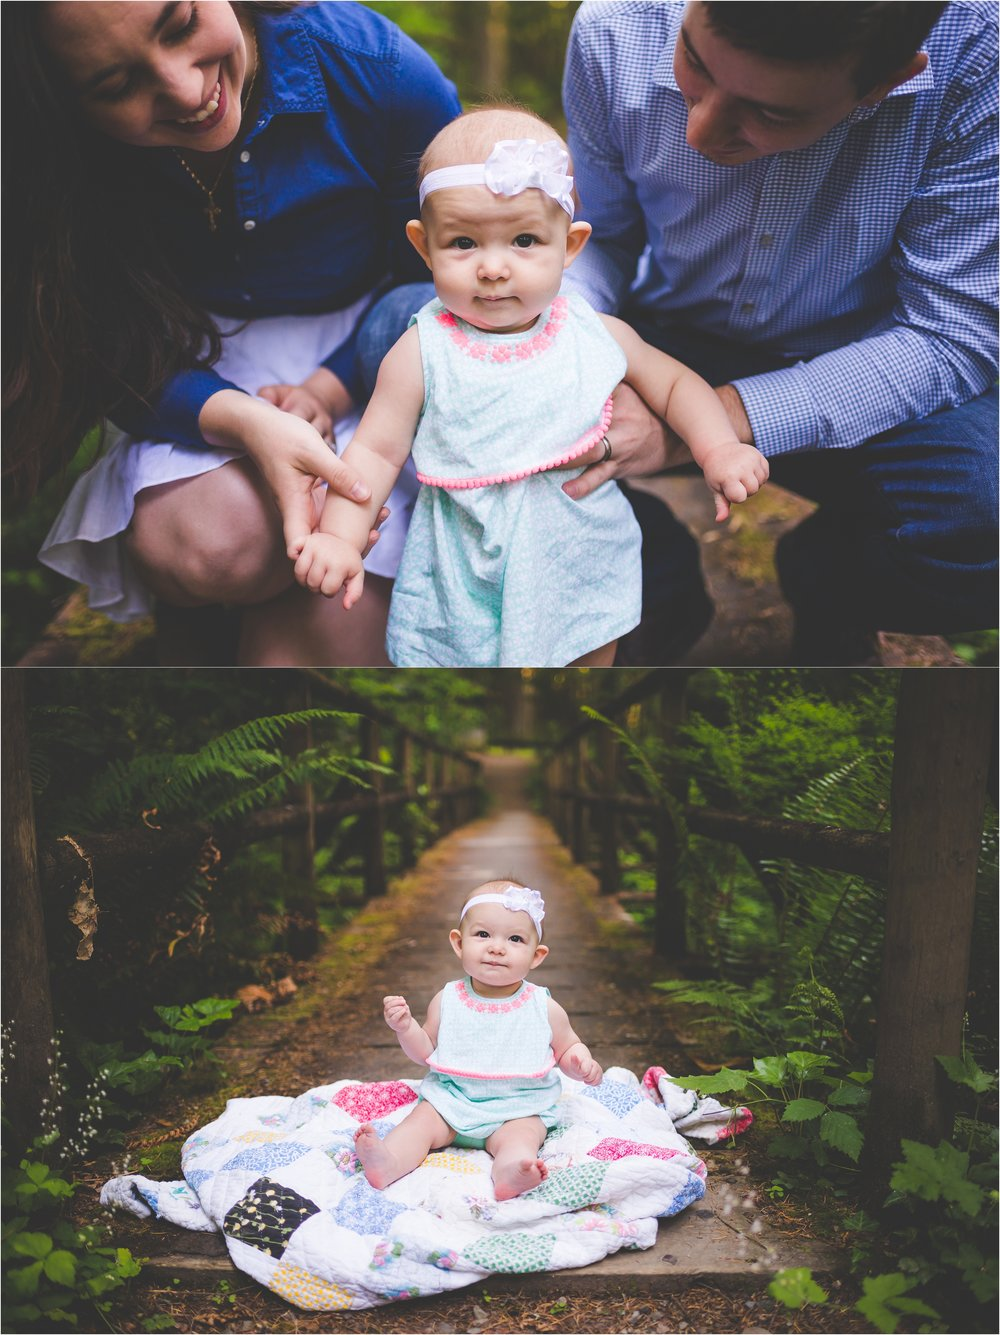 priest-point-park-olympia-wa-family-session-jannicka-mayte-anchorage-alaska-seattle-washington-family-photographer_0011.jpg